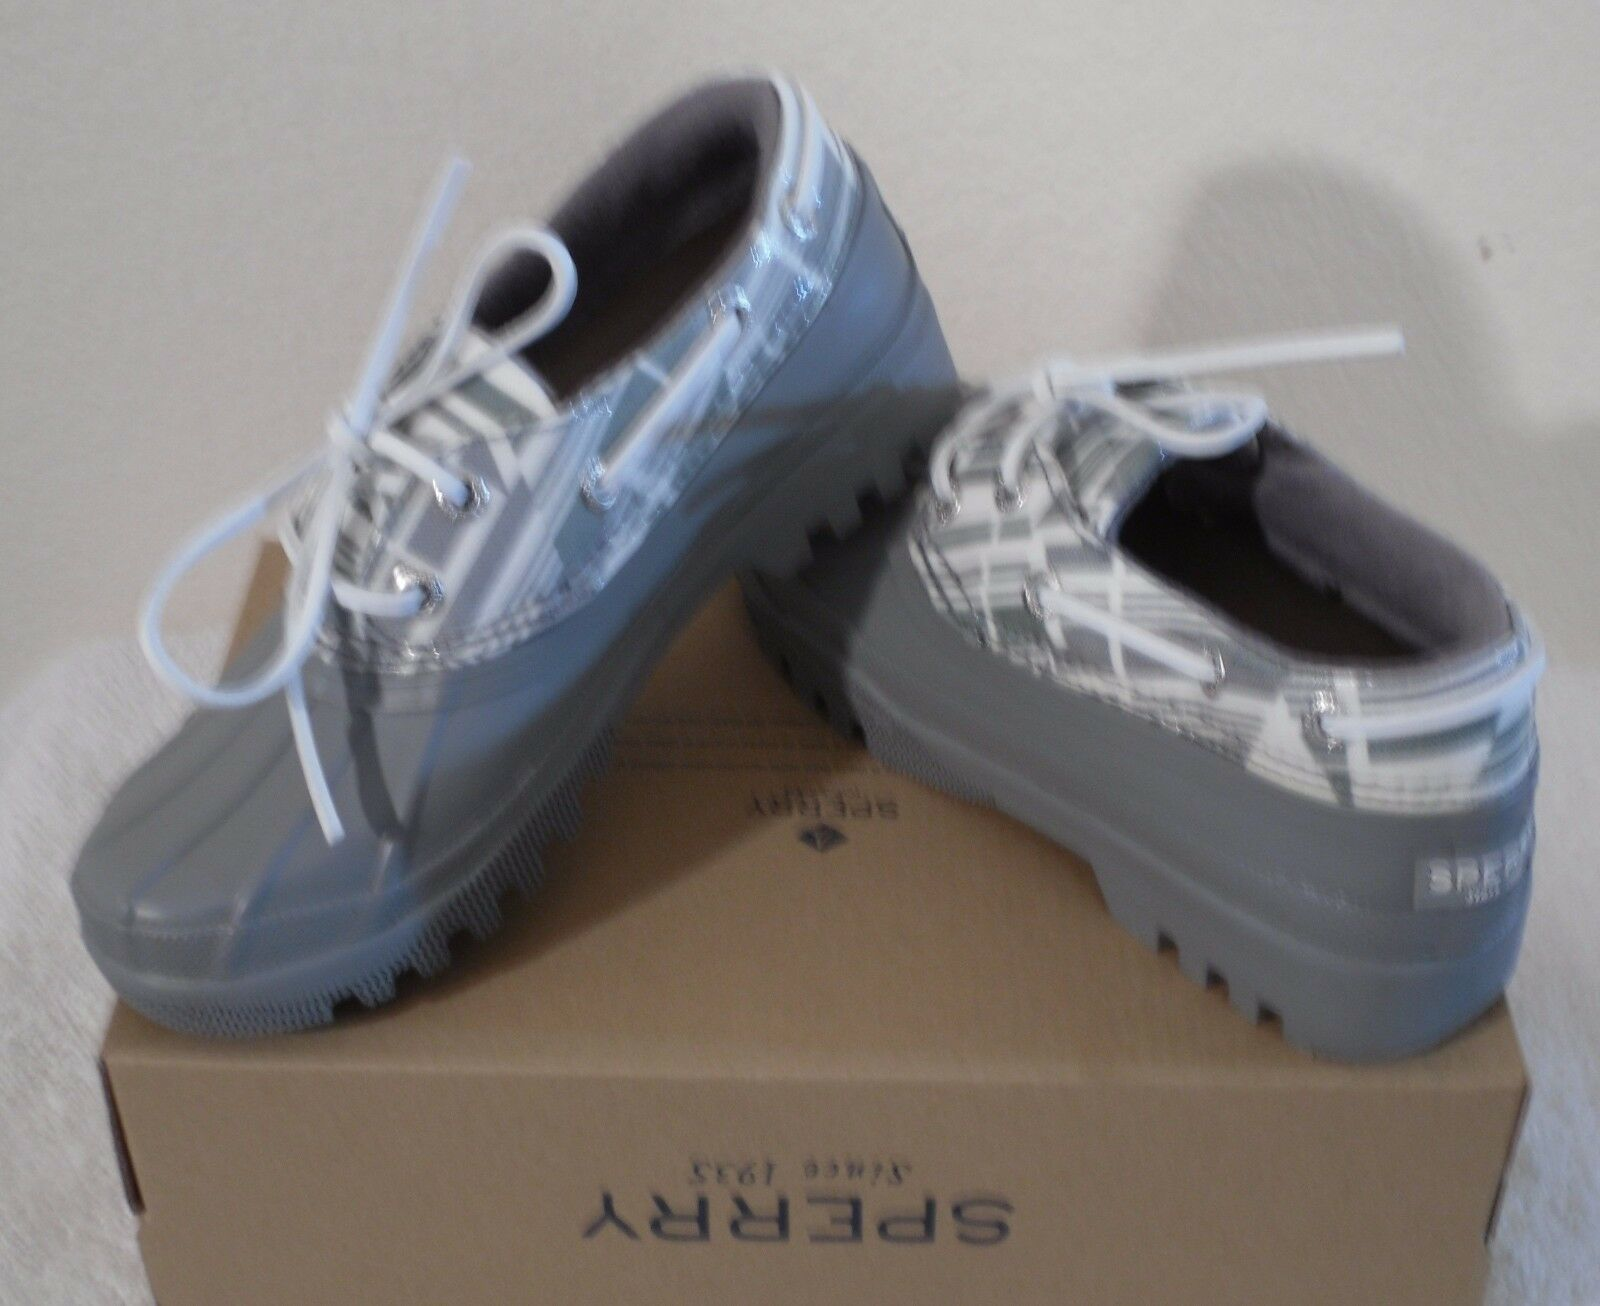 NIB Sperry Top-Sider Heron Womens Rain Shoes Boots 6 Grey MSRP